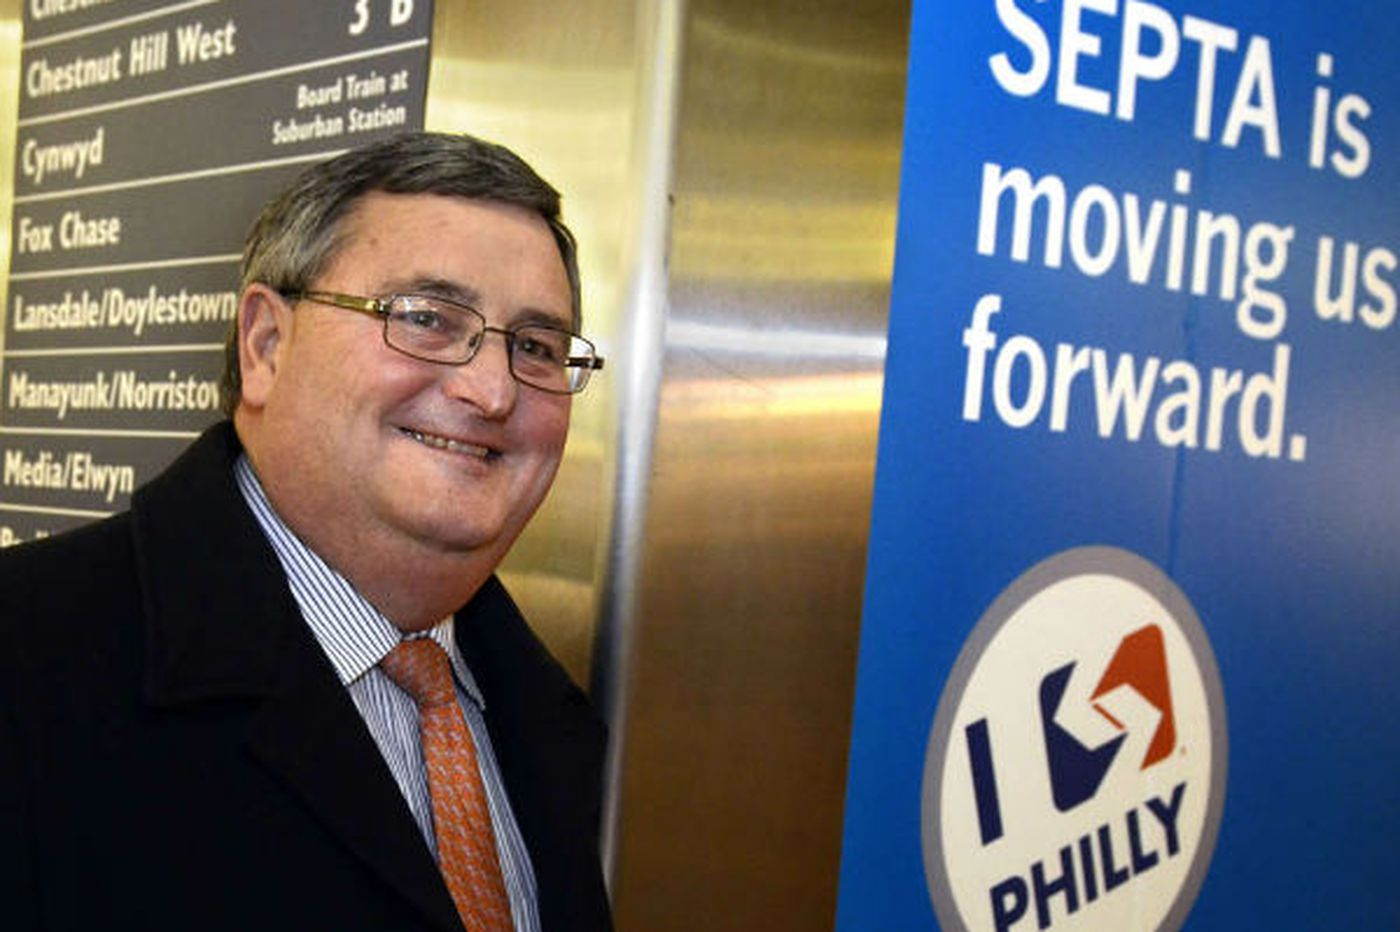 SEPTA general manager retiring; deputy is likely replacement